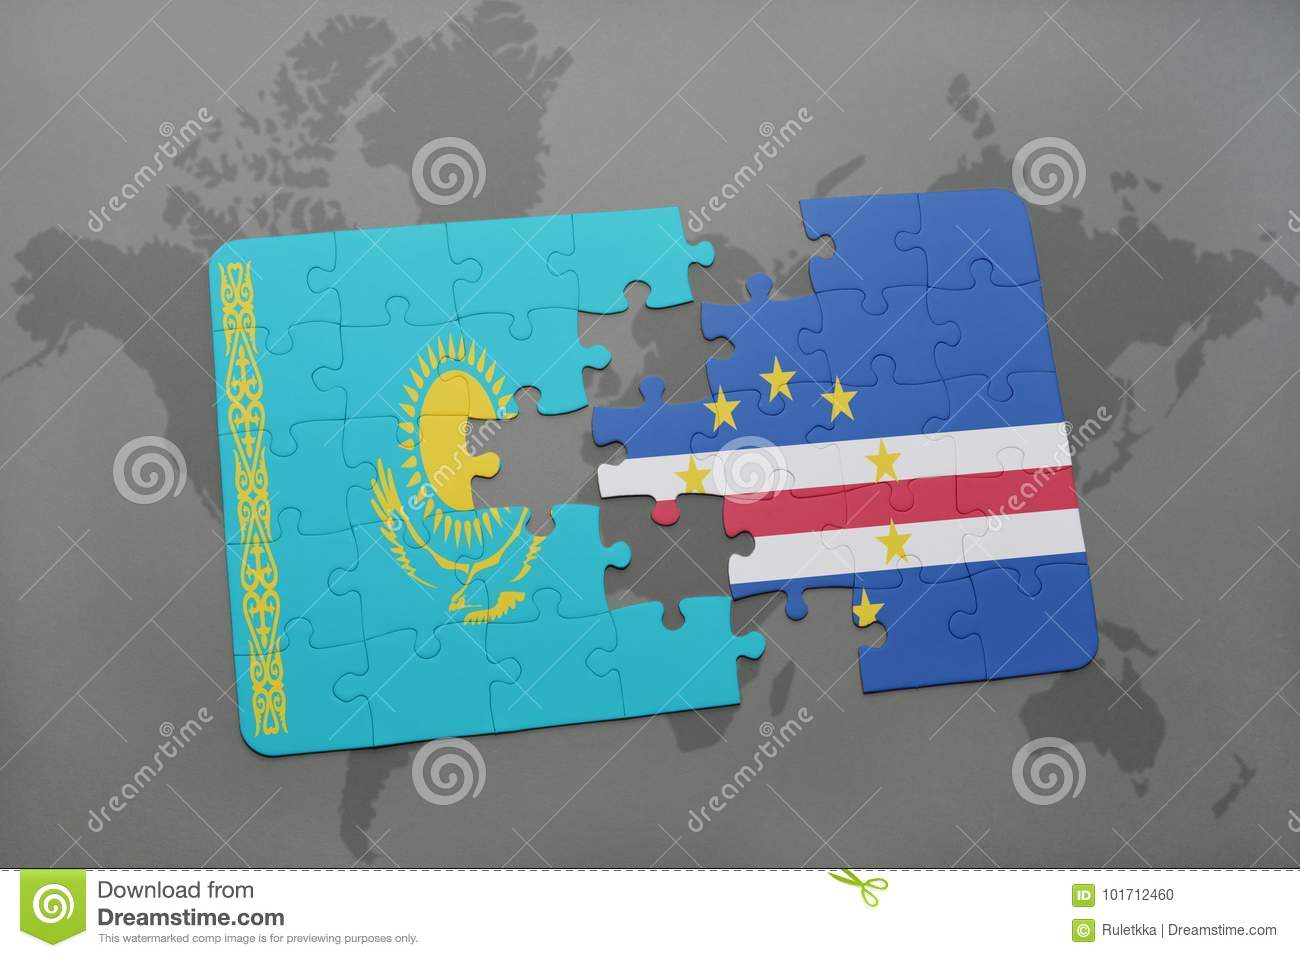 Puzzle With The National Flag Of Kazakhstan And Cape Verde On A